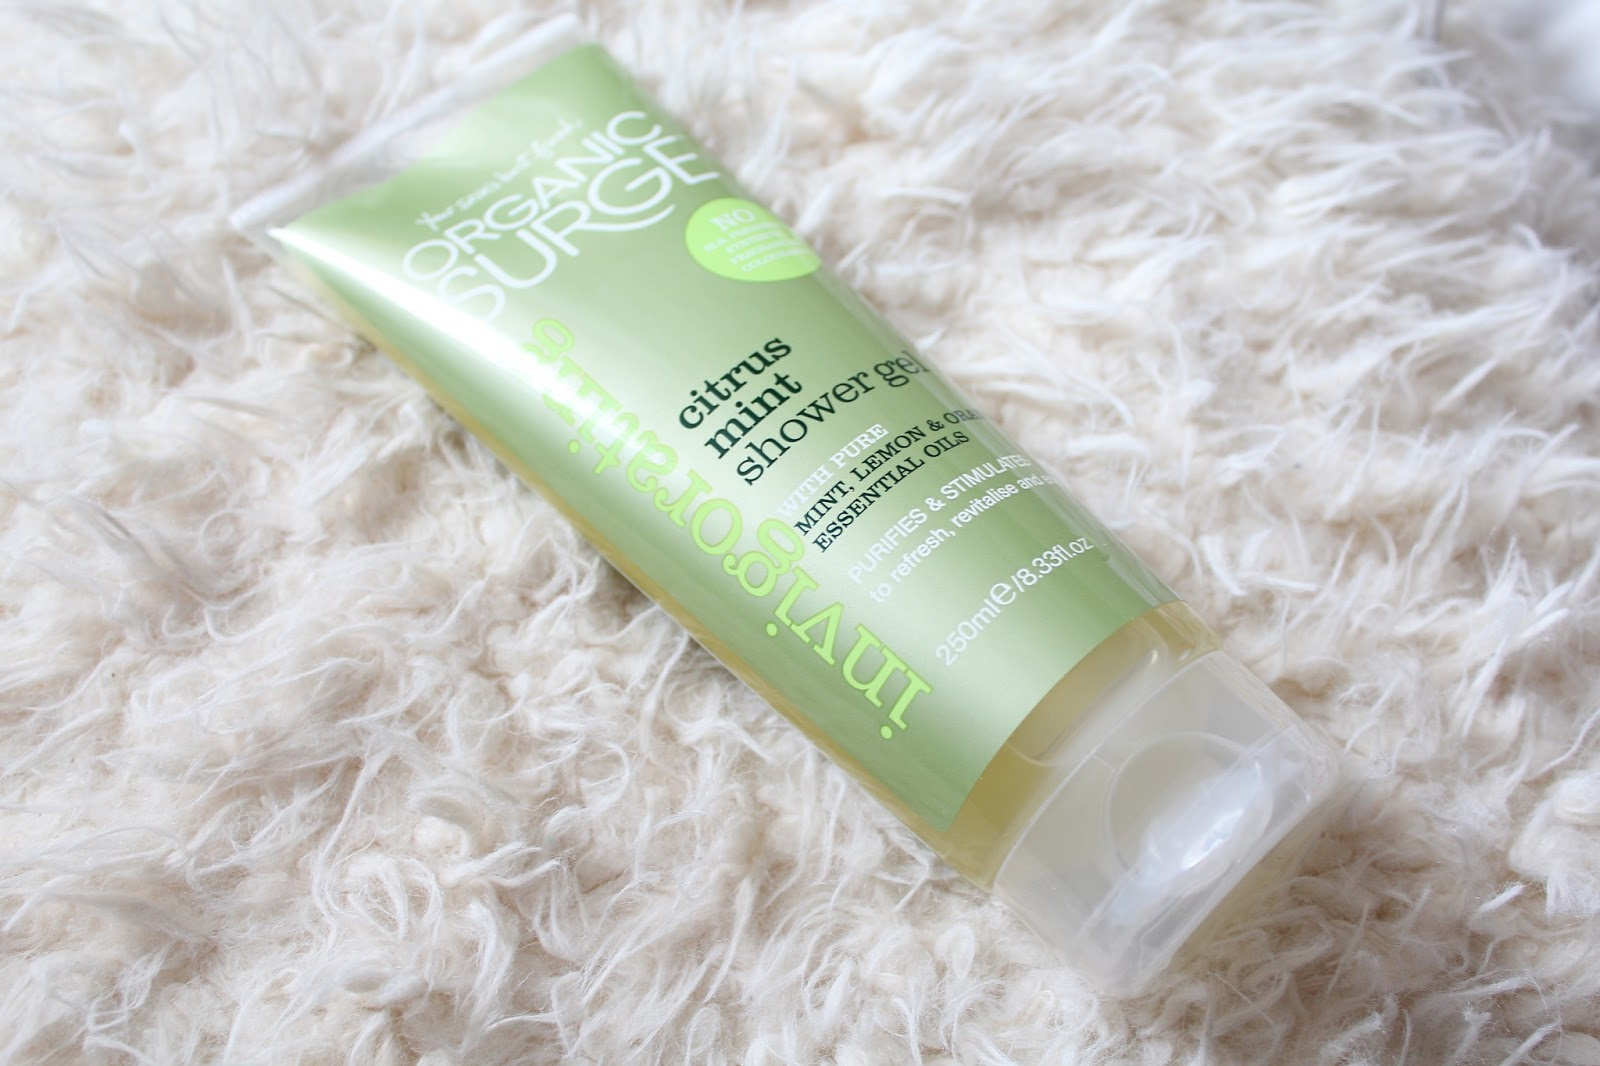 Organic Surge Citrus Mint Shower Gel